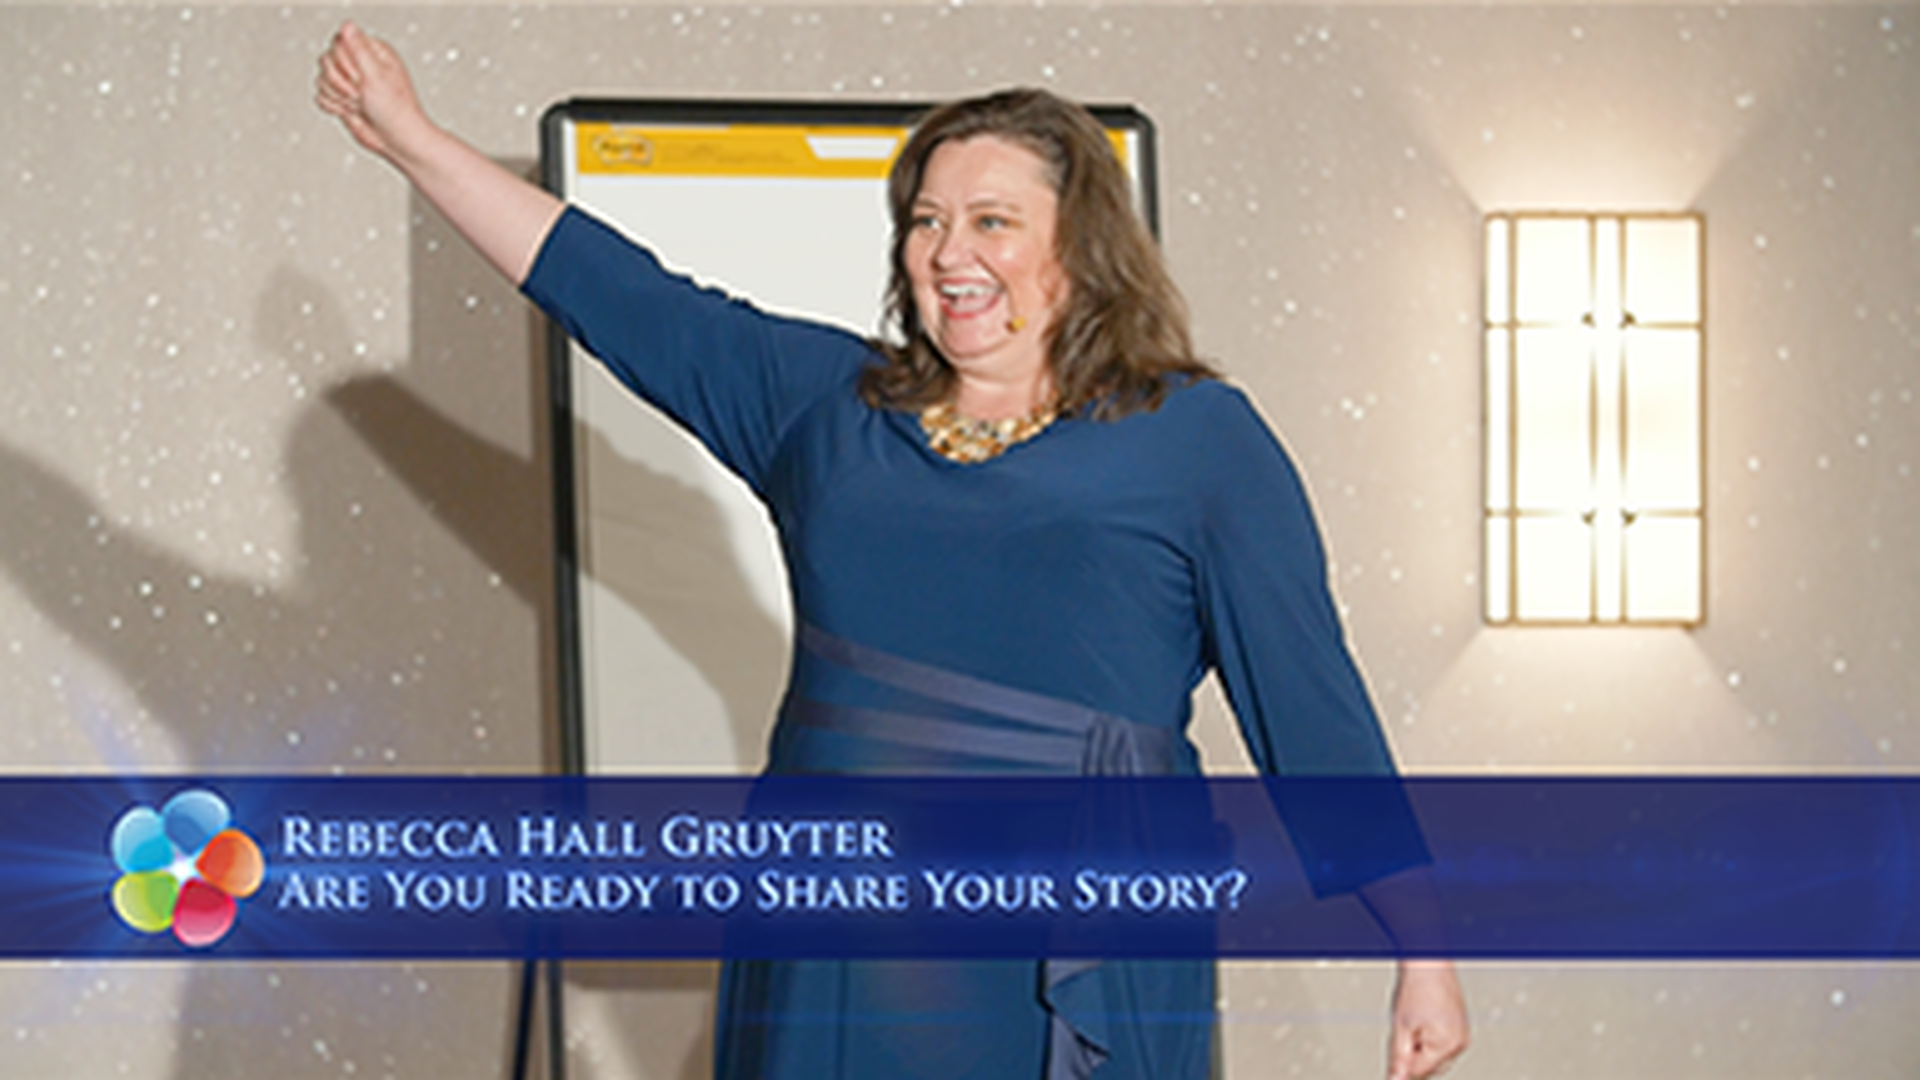 Are You Ready to Share Your Story?